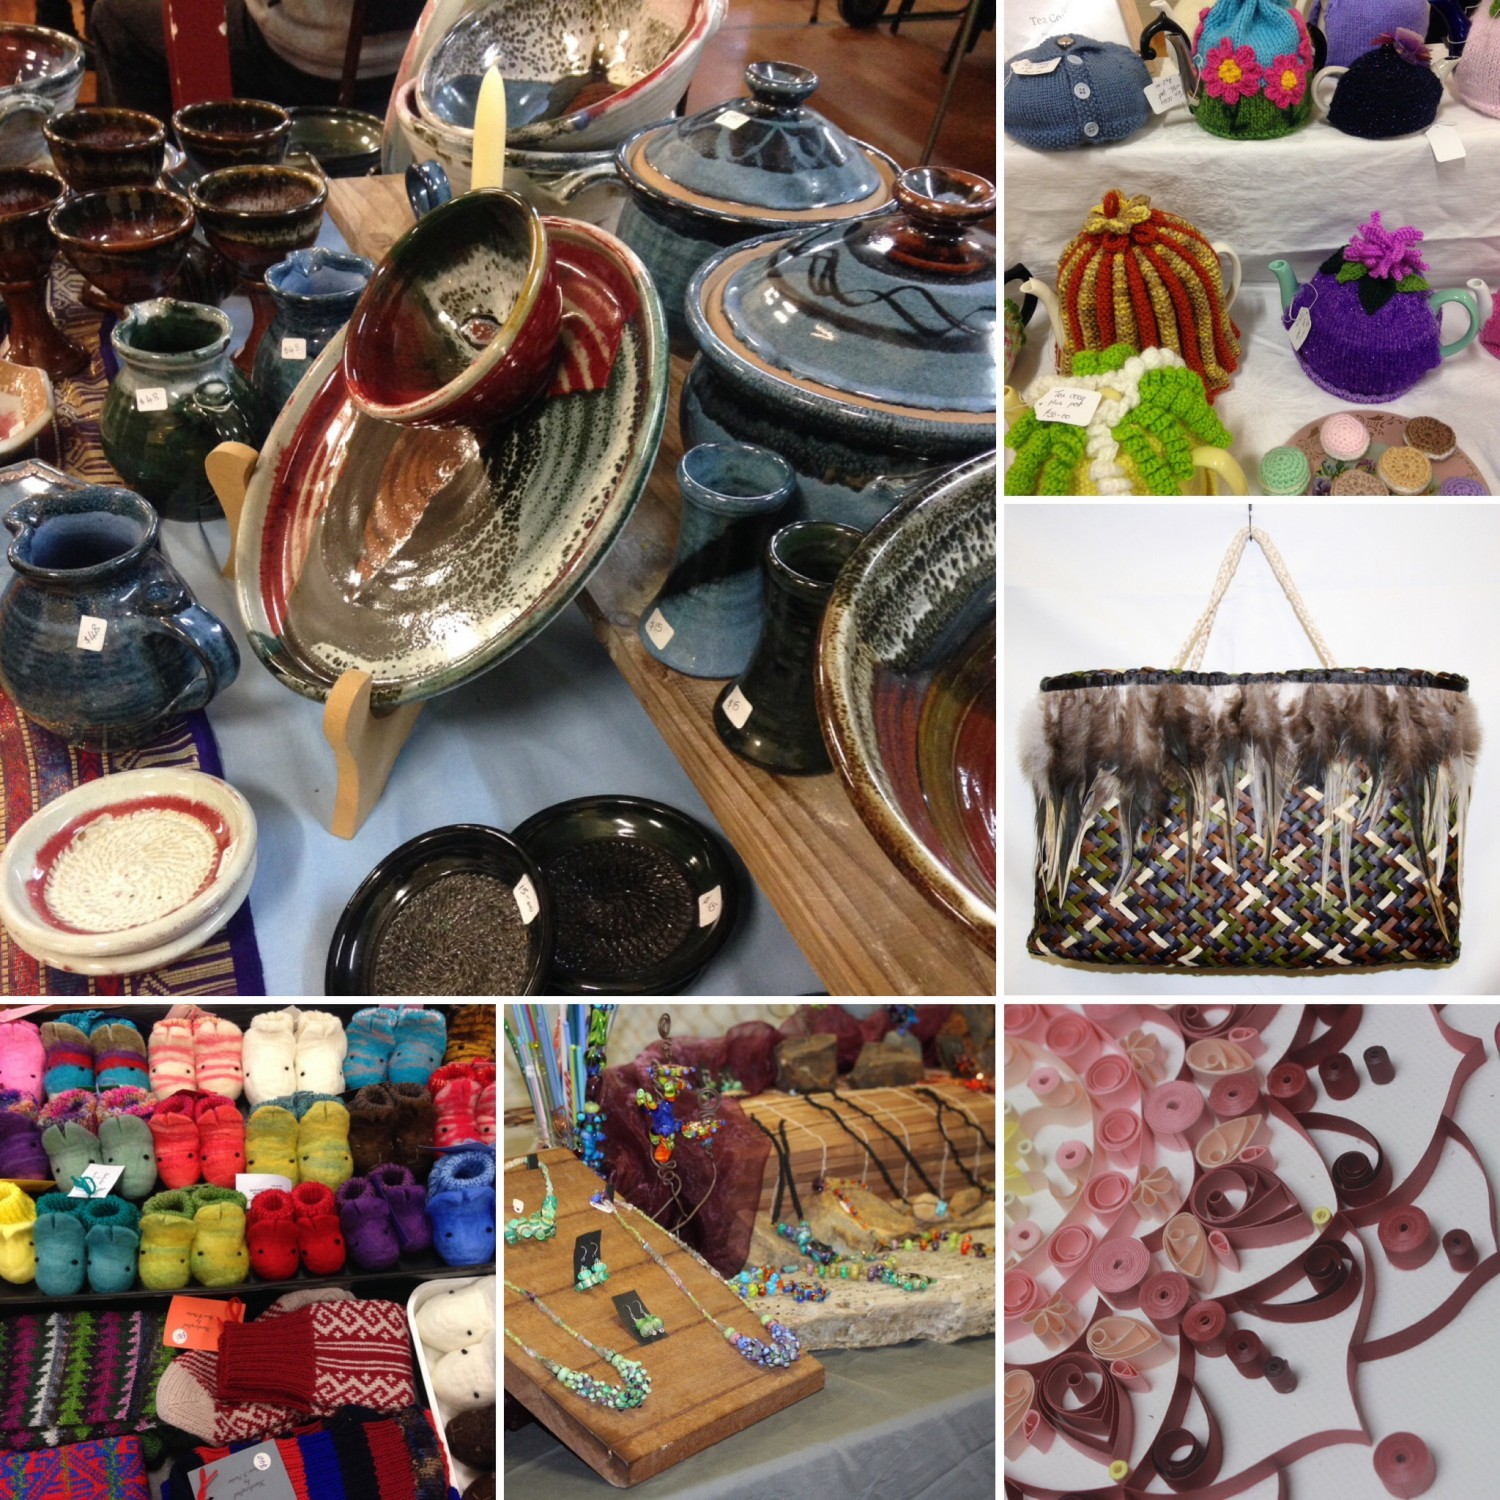 Whitianga events coromandel peninsula art and craft fair for Arts and crafts festivals in georgia